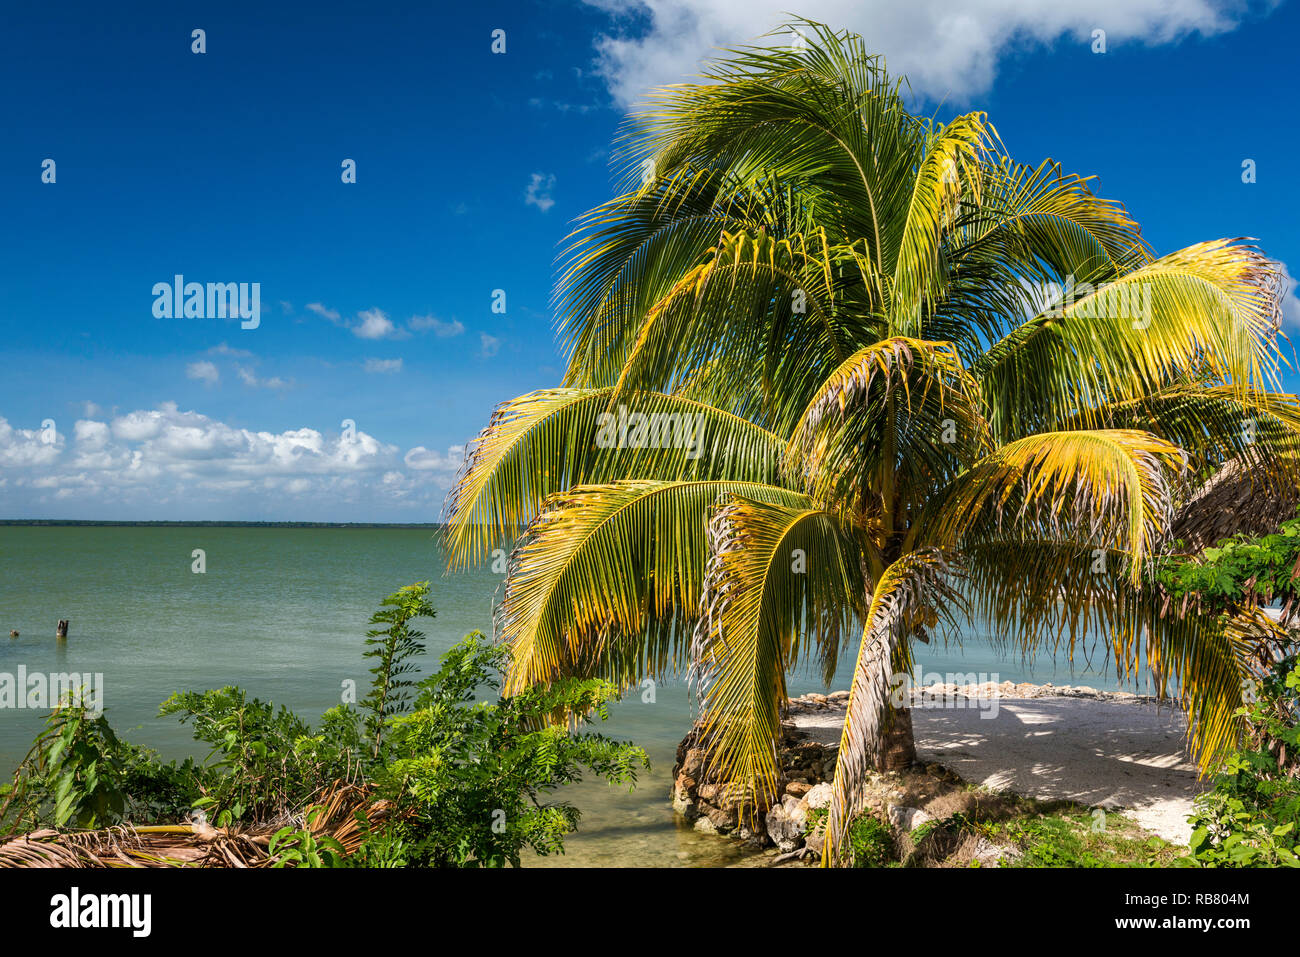 Palm tree at Corozal Bay seashore, Caribbean Sea coast, Cerros Beach Resort, Cerros Peninsula, Corozal District, Belize, Central America - Stock Image